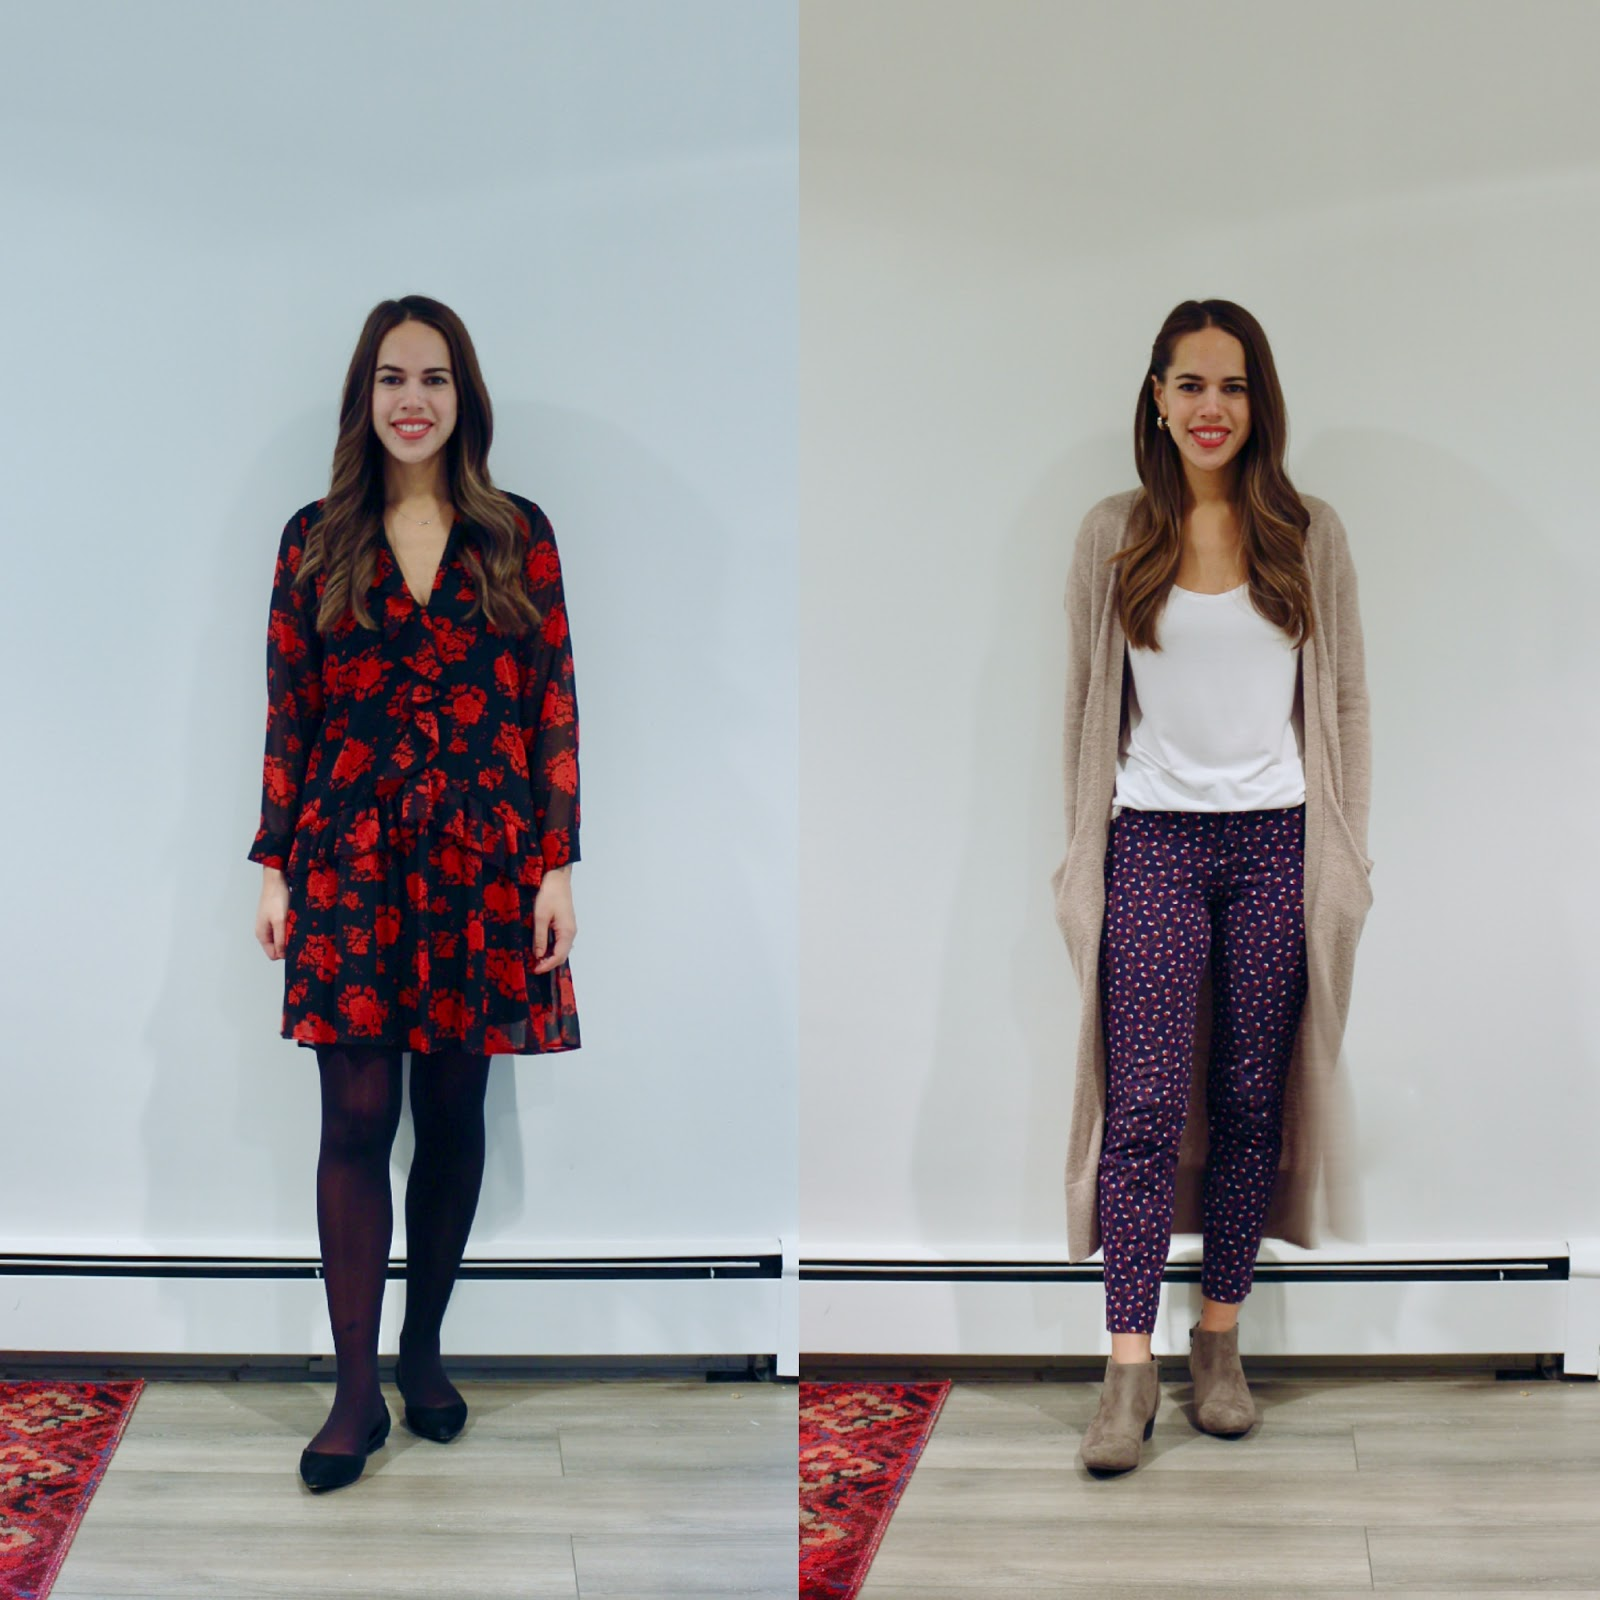 Jules in Flats October Outfits (Business Casual Fall Workwear on a Budget)